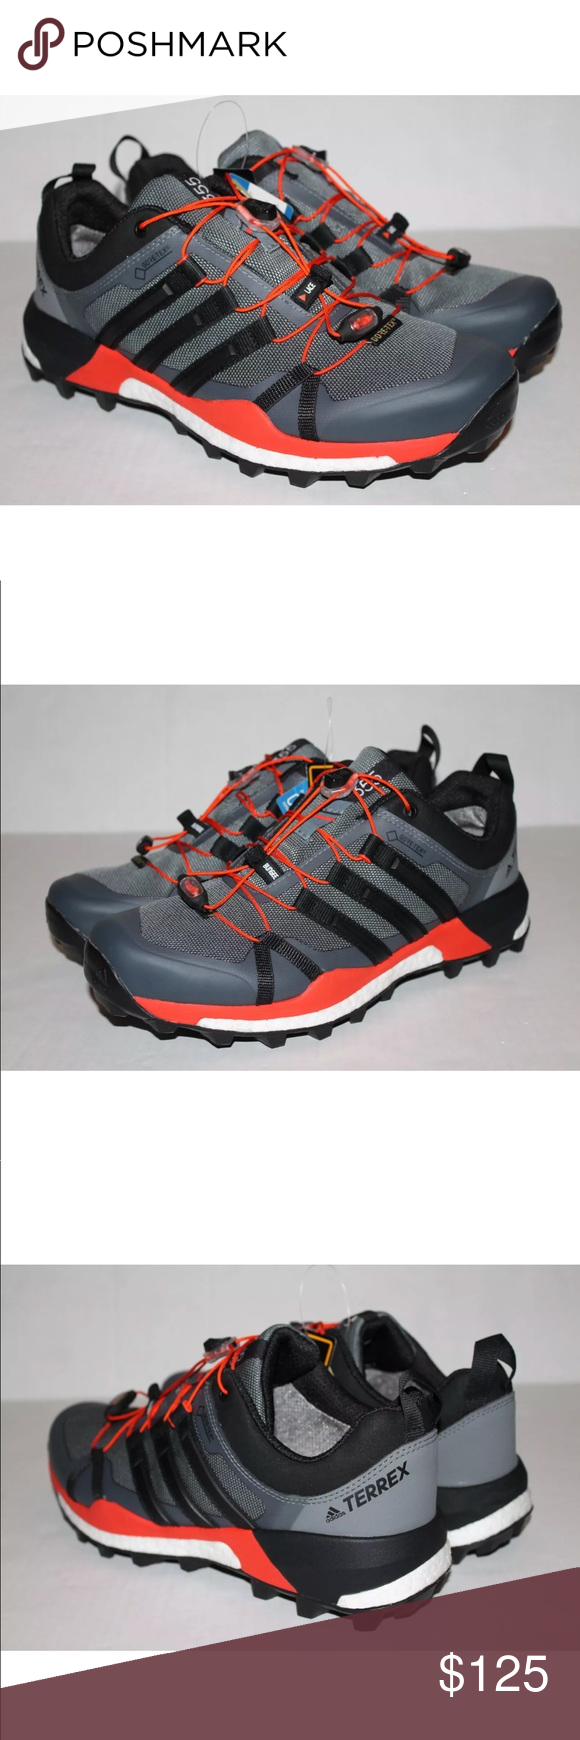 Adidas Terrex Skychaser Gtx Trail Hiking Shoe Equipped With Boost Technology And Gore Tex Shoes Are New Without The B Hiking Shoes Shoes Sneakers Adidas Shoes